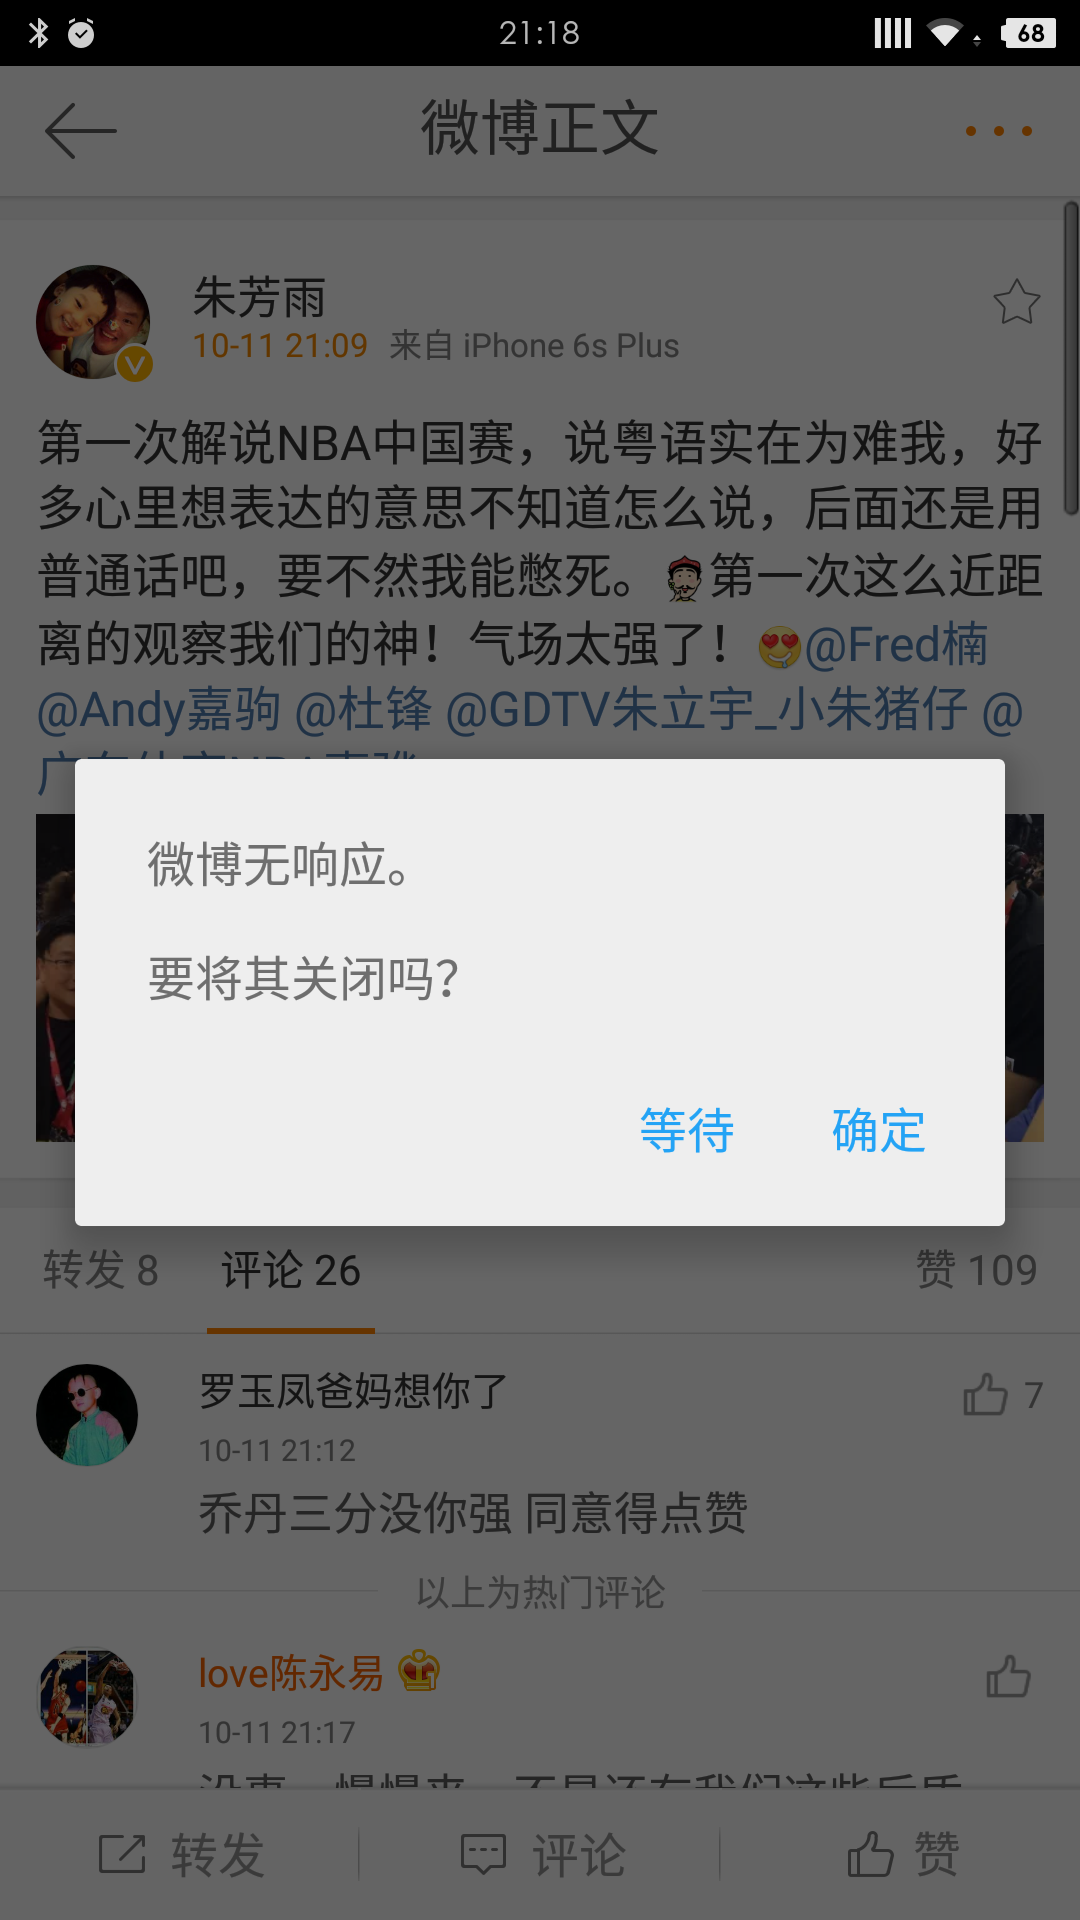 Screenshot_2015-10-11-21-18-07.png